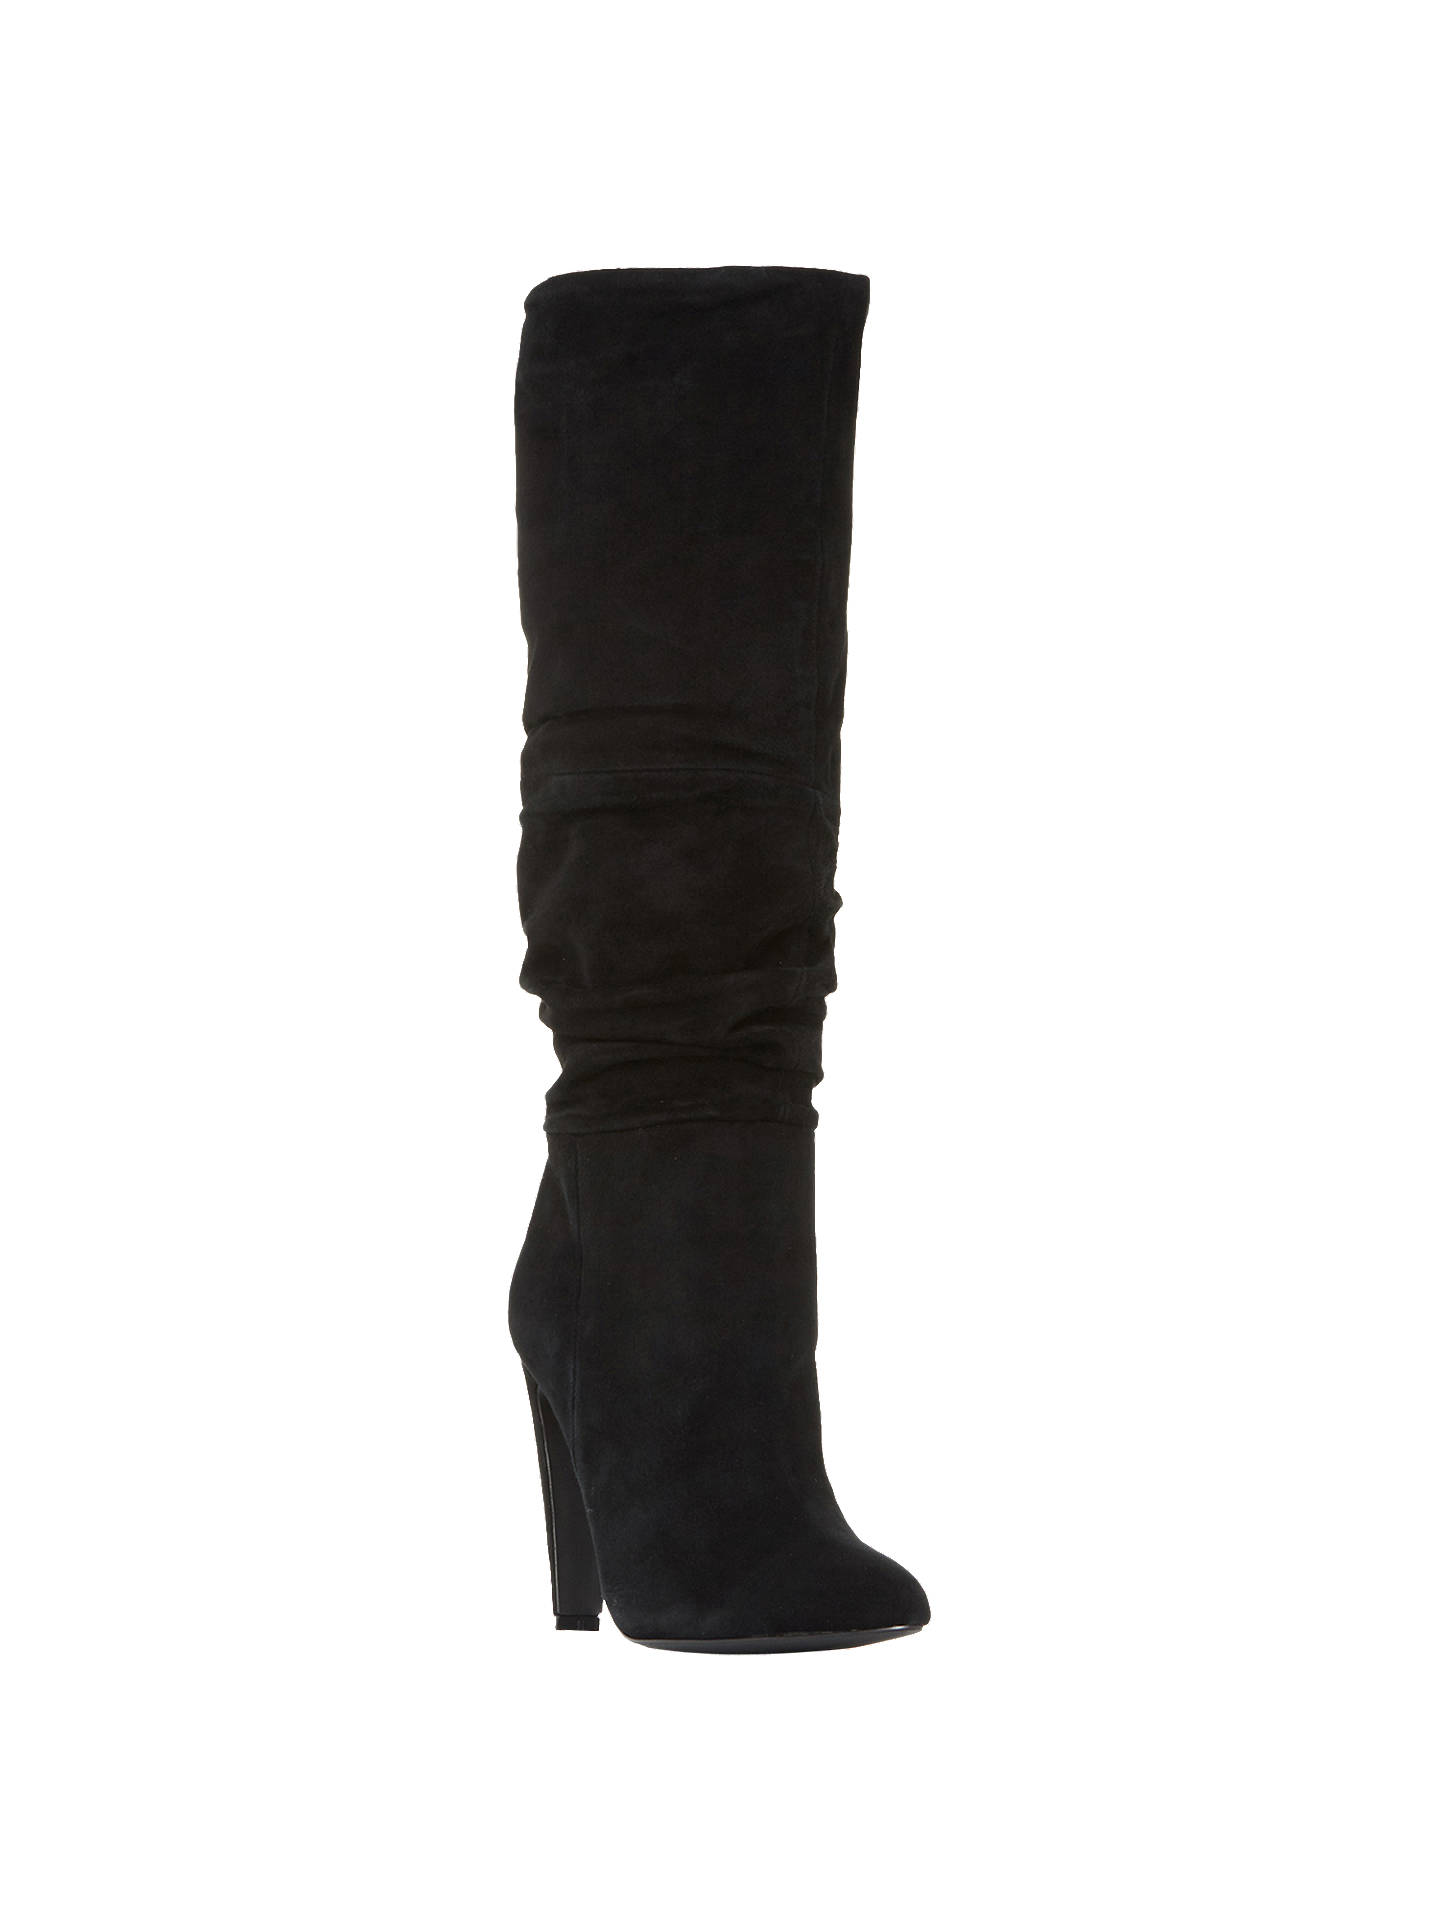 2f1d877d3 Buy Steve Madden Carrie Ruched Knee High Boots, Black Suede, 3 Online at  johnlewis ...